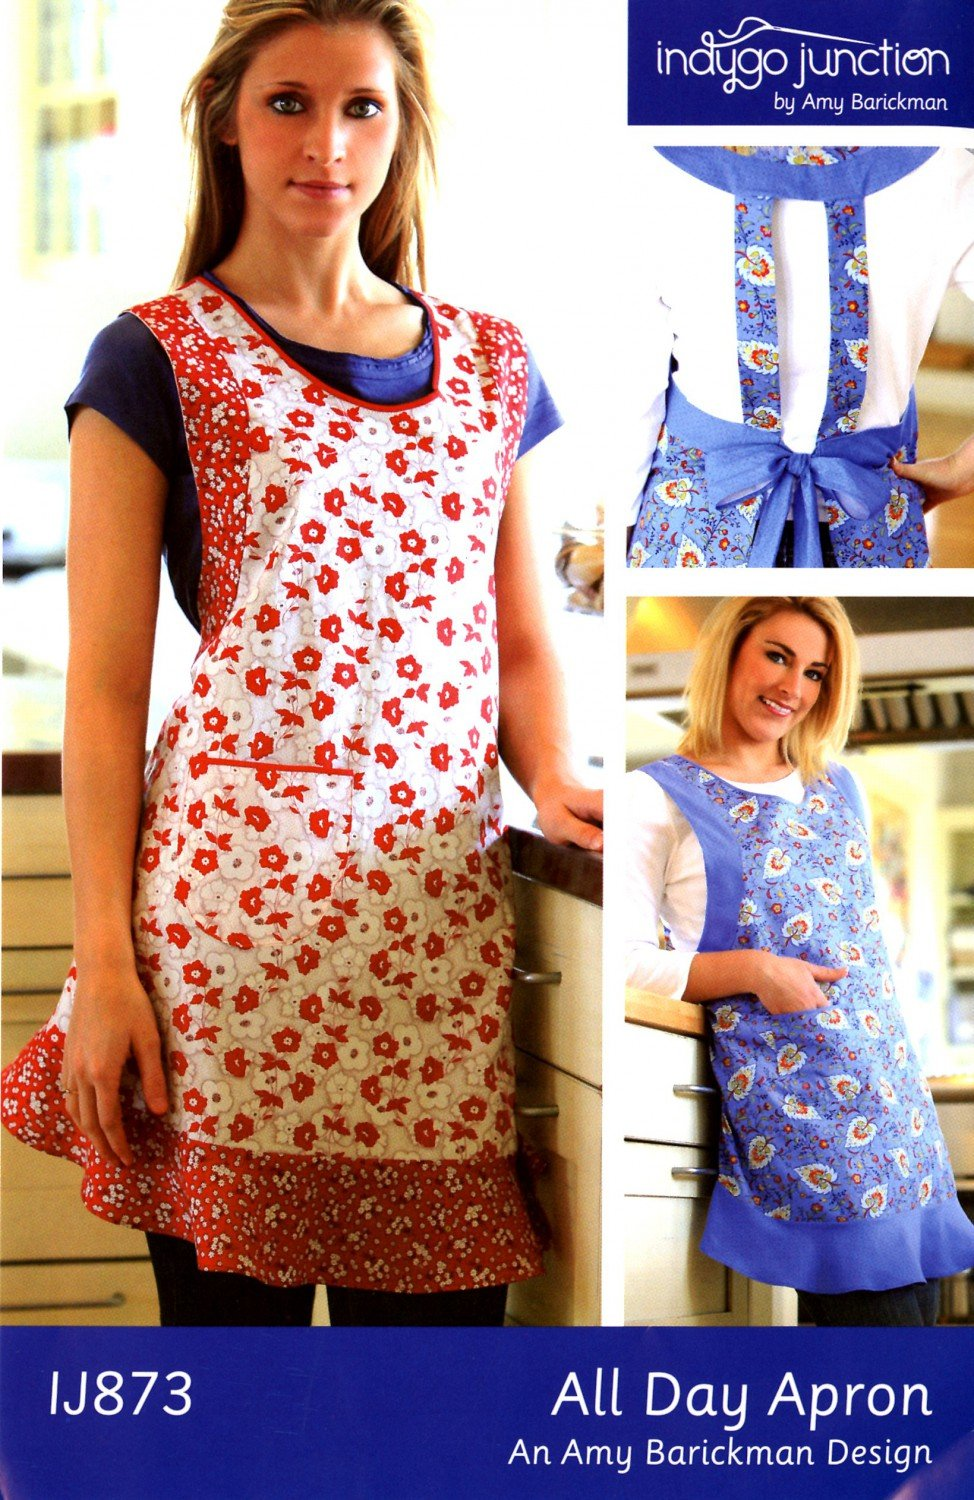 Indigo Junction...All Day Apron